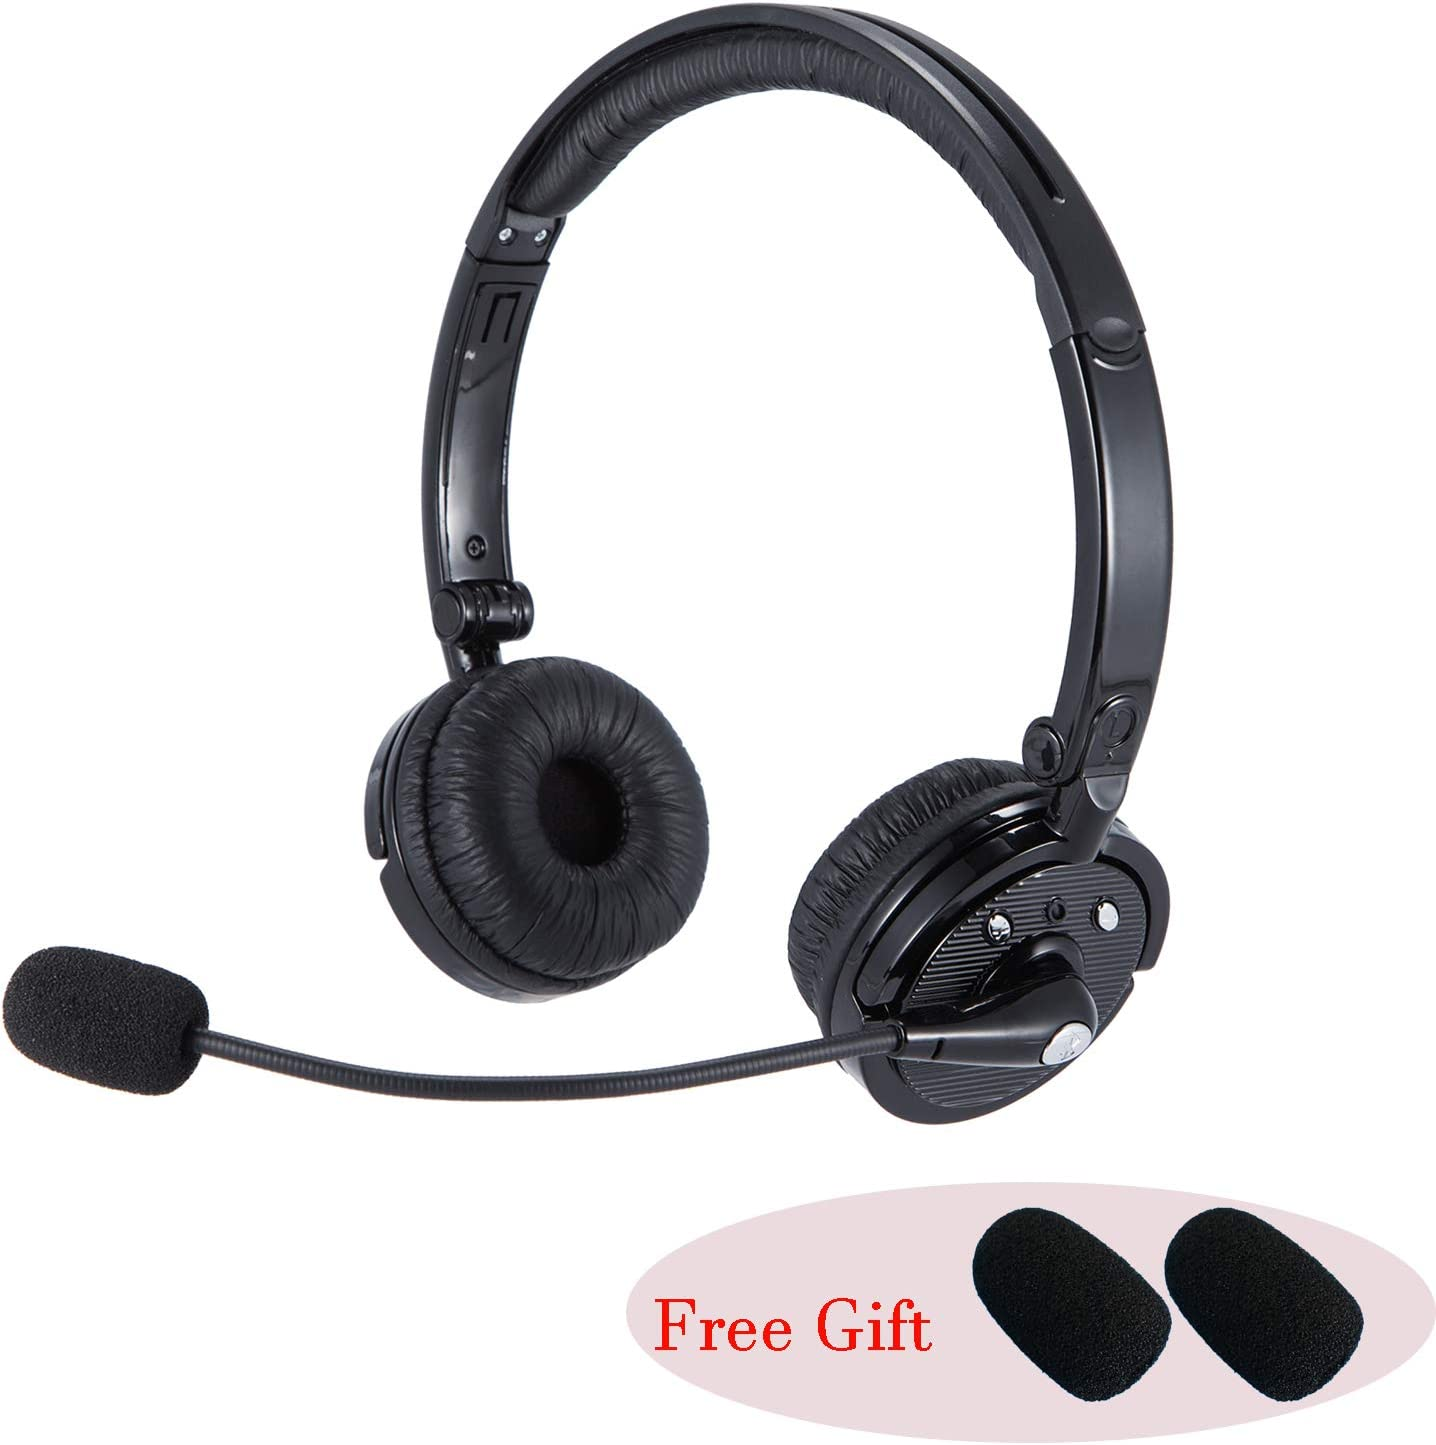 Premium Wireless Bluetooth Headset, Noise Cancellation Head Set with Microphone Hands Free On Ear Phone Headset Clear Sound, Long Battery Life, No Wires